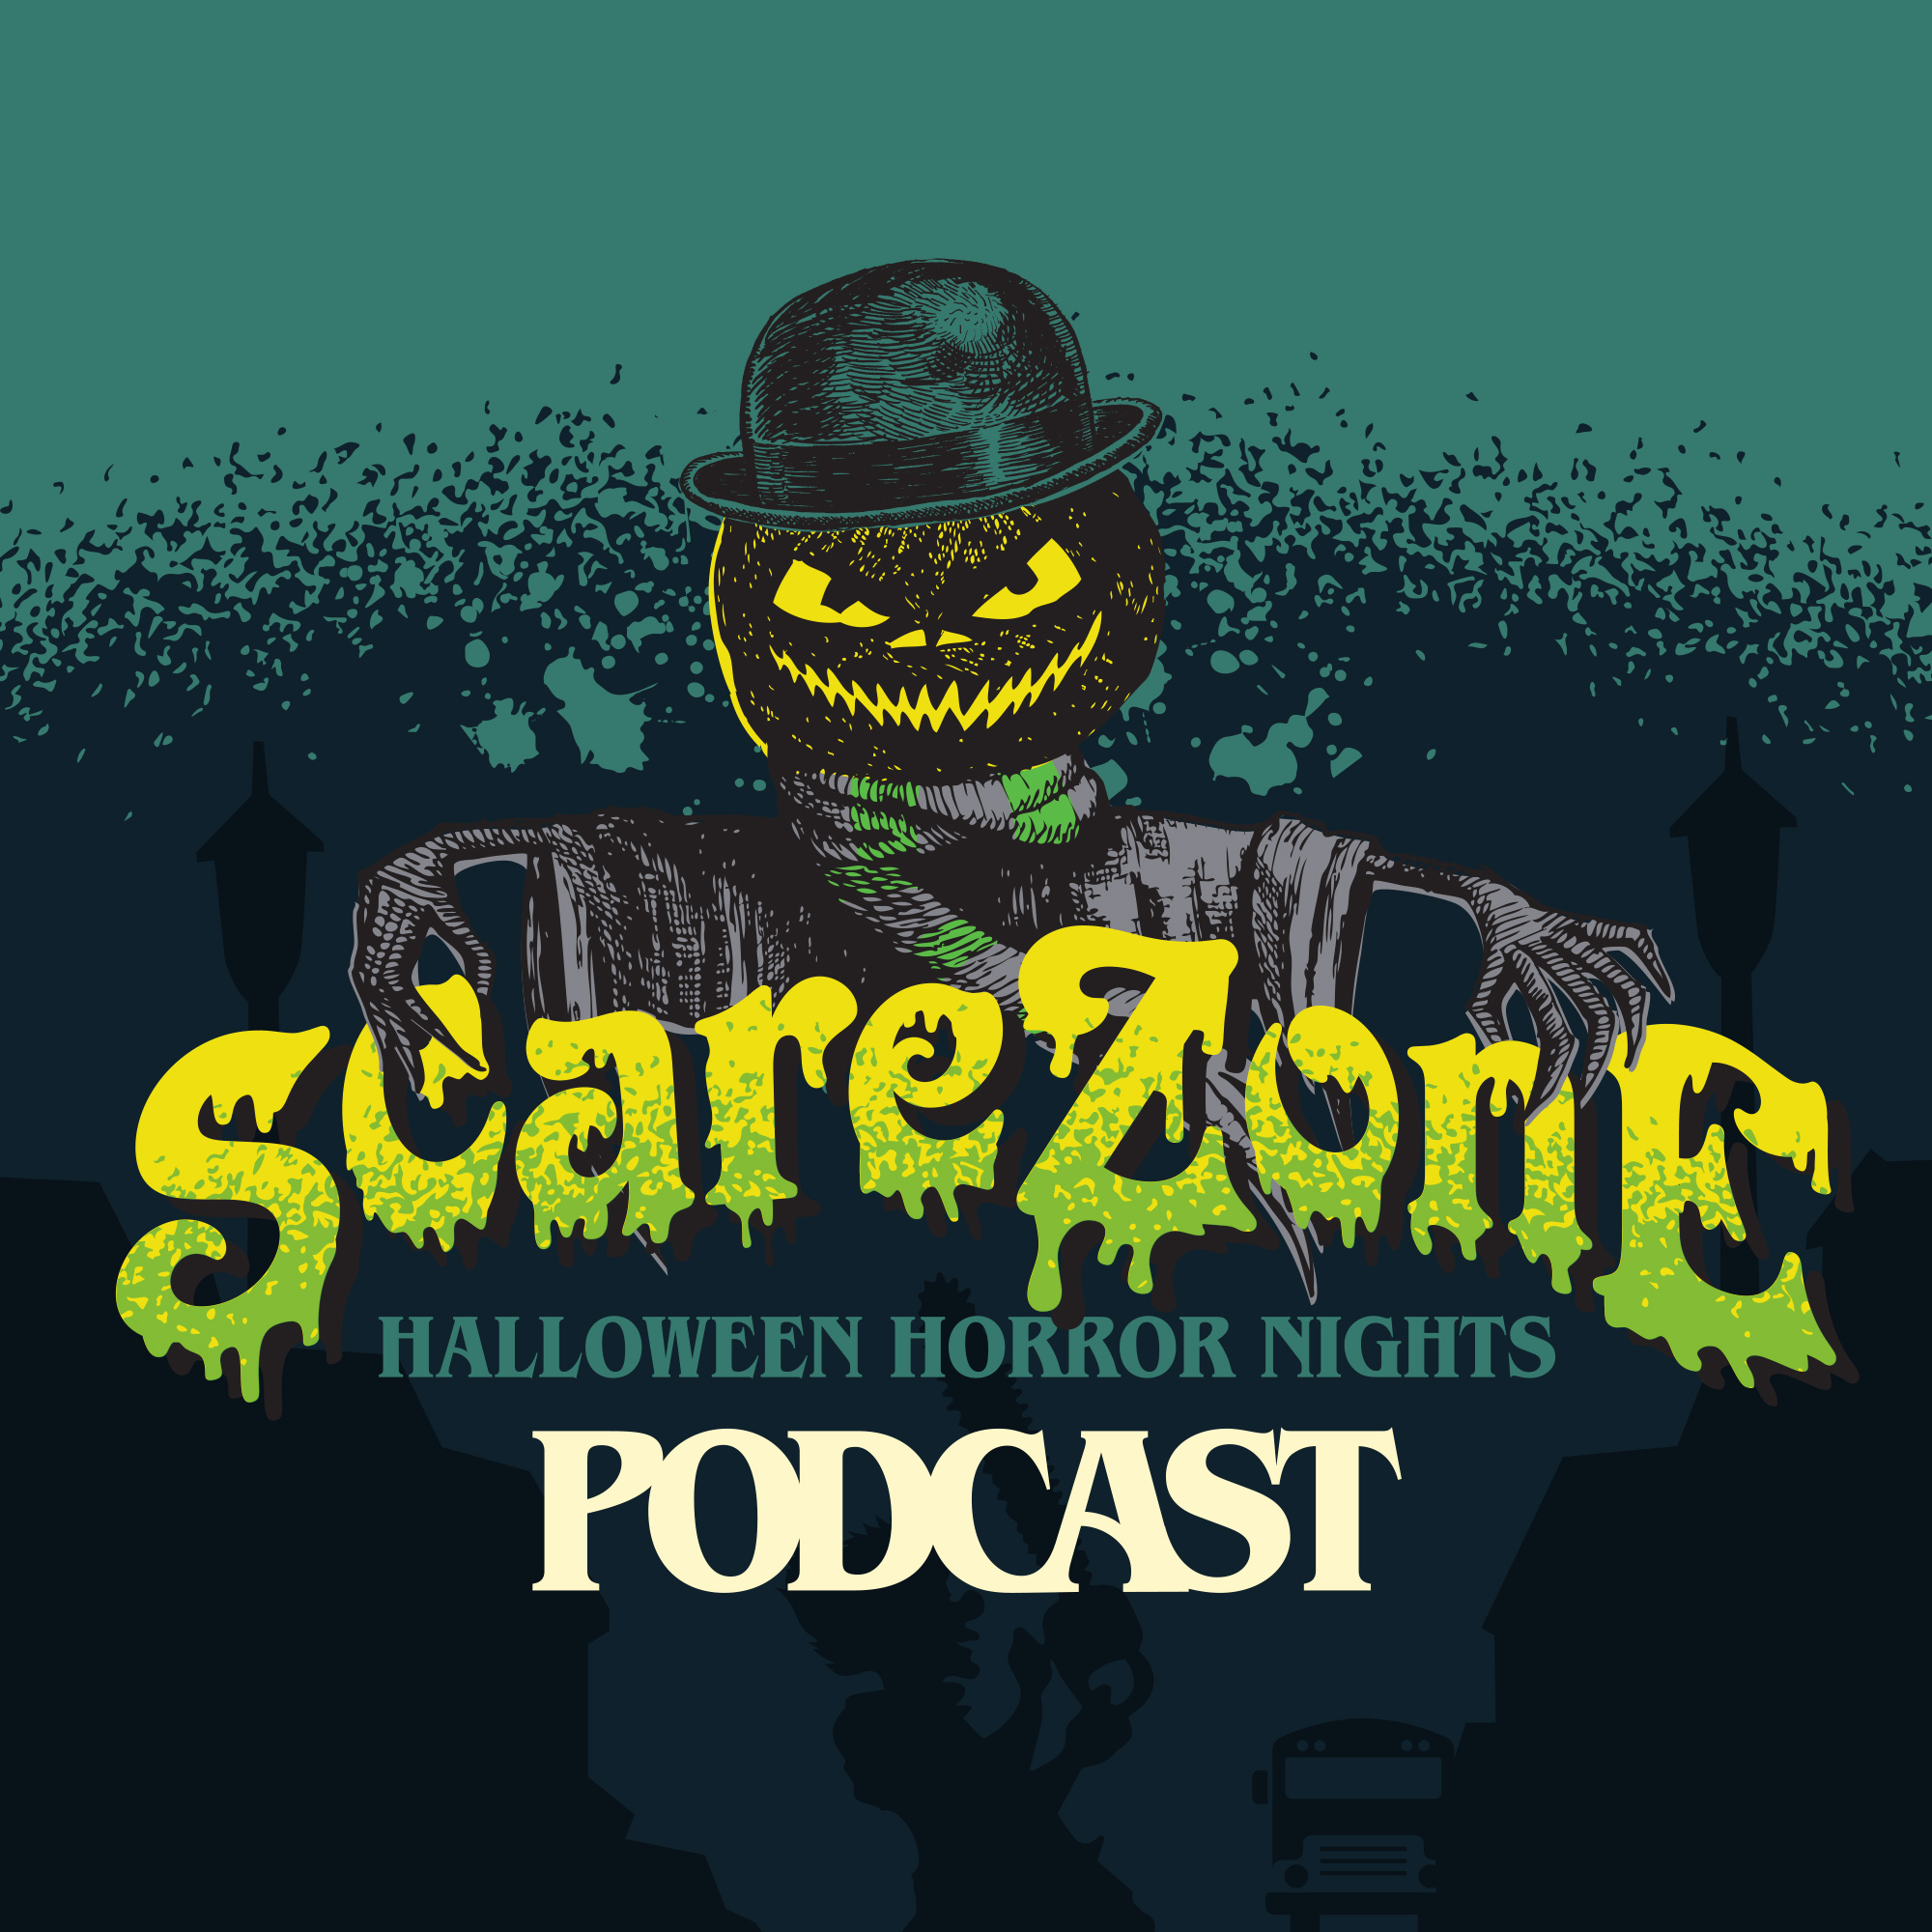 ScareZone - Halloween Horror Nights Podcast show art